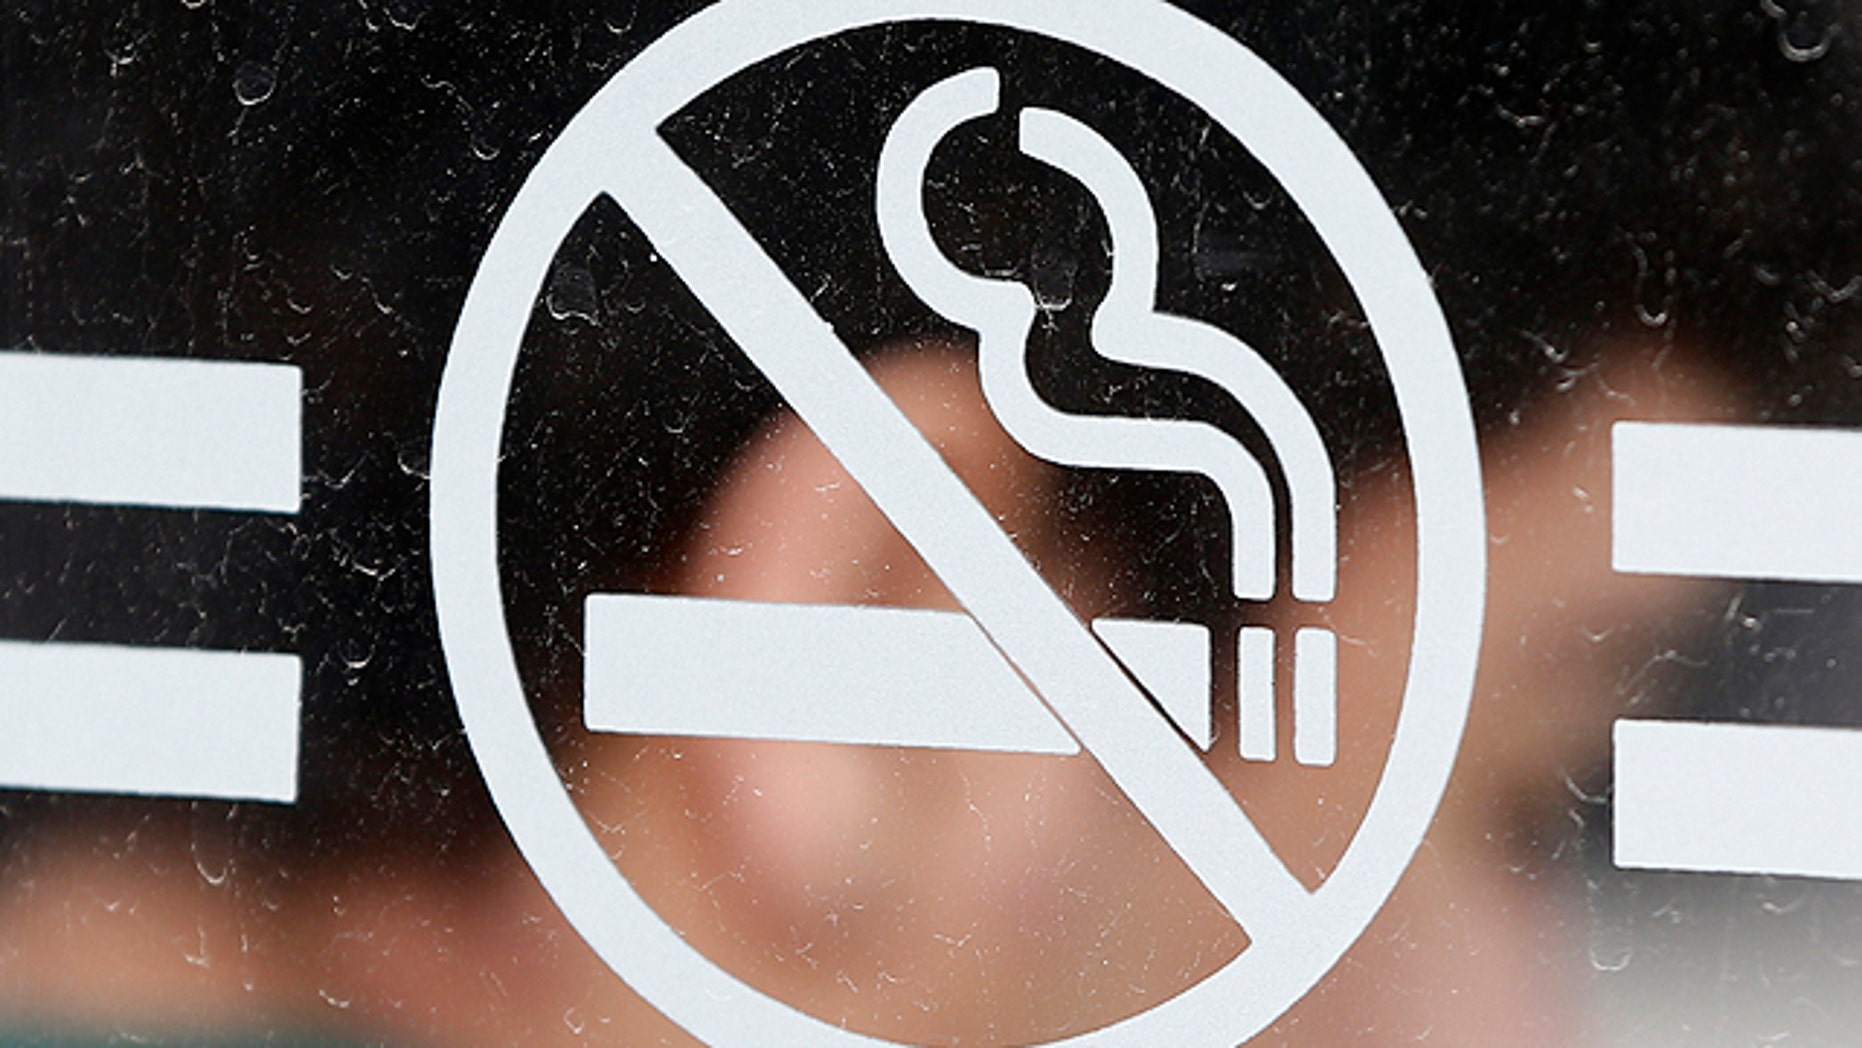 June 26, 2012: A student waits for a bus behind a no smoking sign at the State University of New York at Albany in Albany, N.Y. As tobacco bans are sweeping campuses nationwide, one California city has passed an ordinance requiring all apartments and condo units to be designated either smoking or non-smoking. (AP)